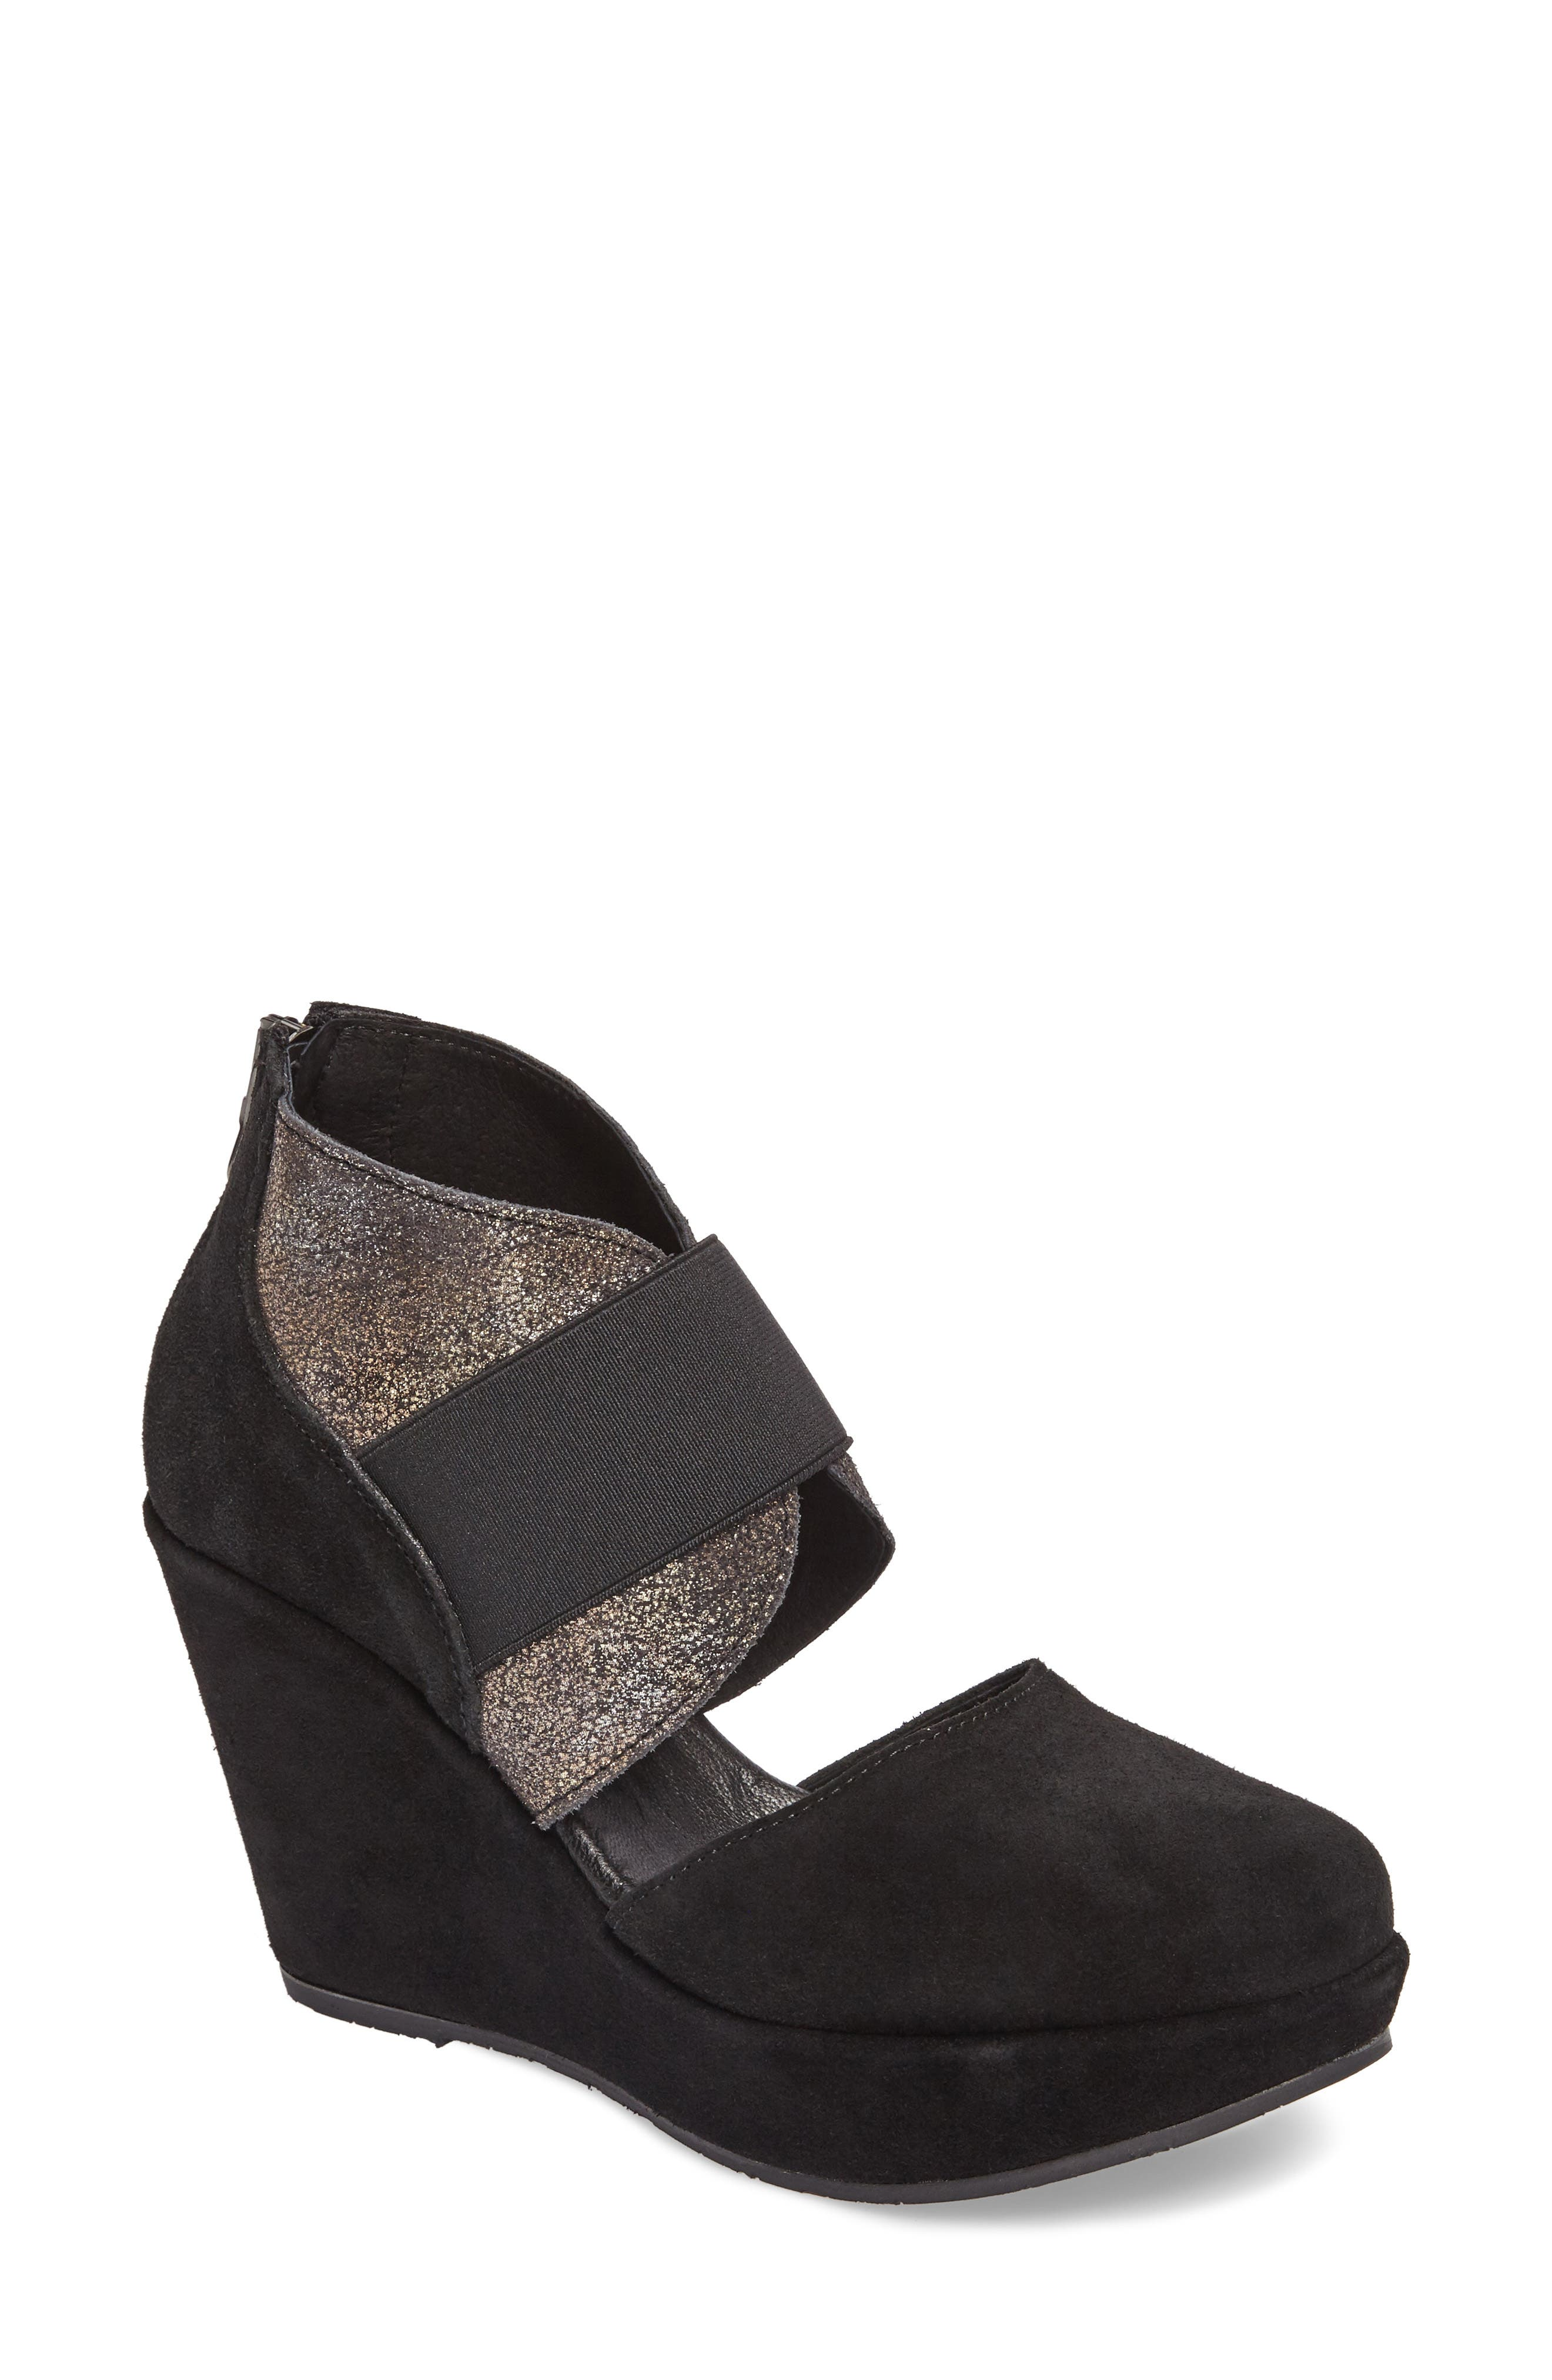 Alternate Image 1 Selected - Cordani Raine Platform Wedge (Women)